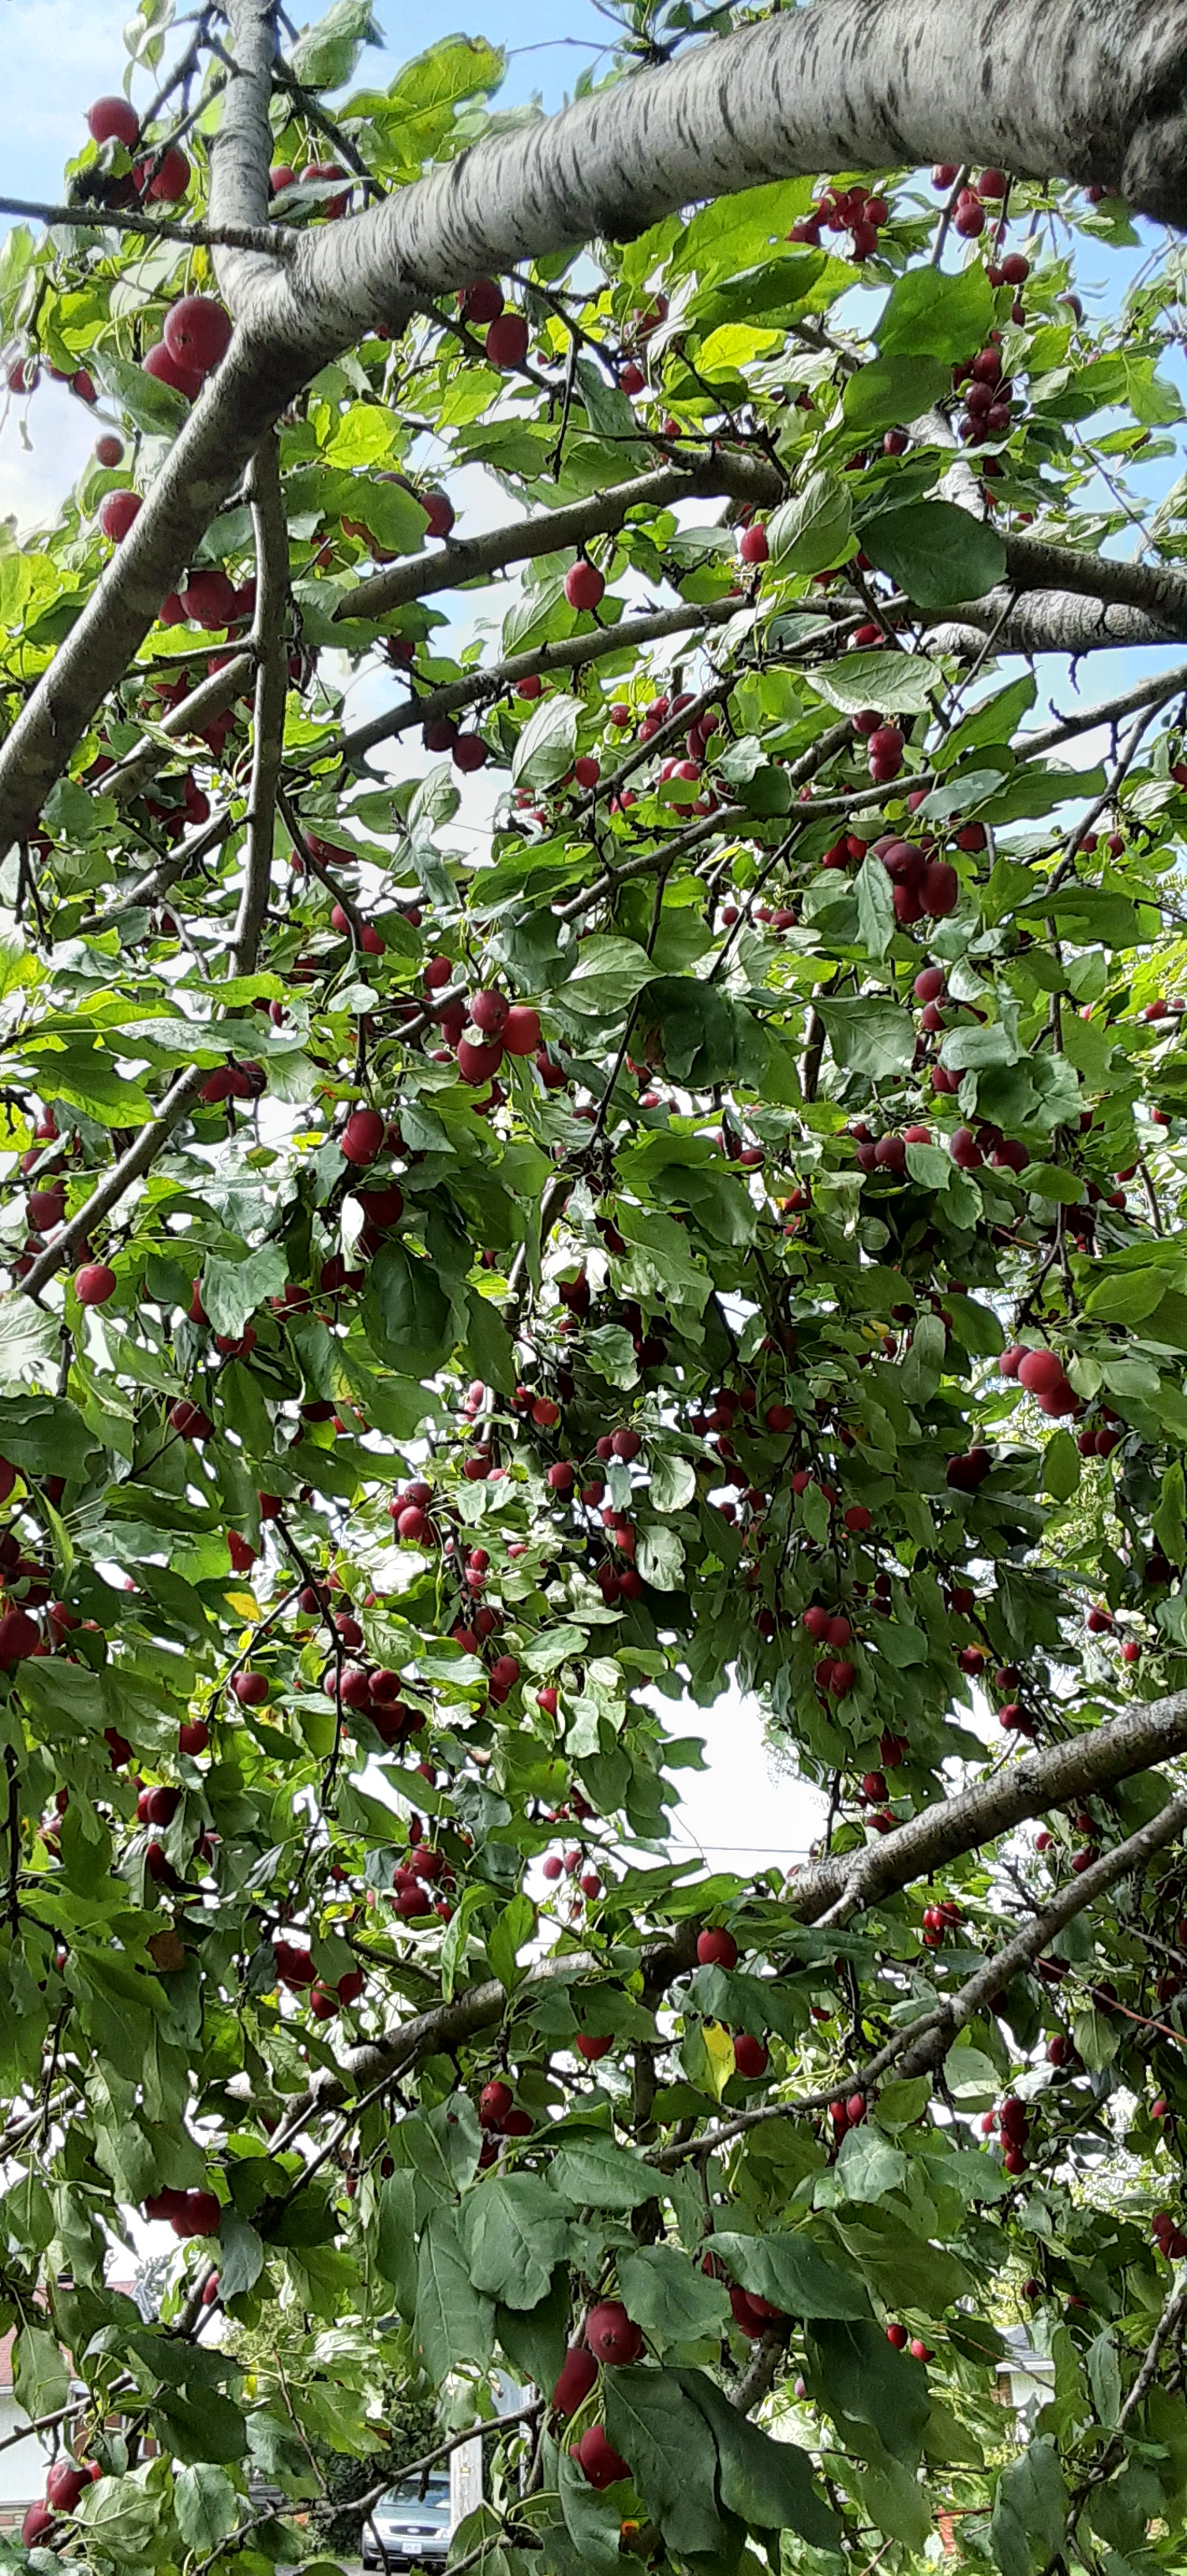 View of crab apples on branches above